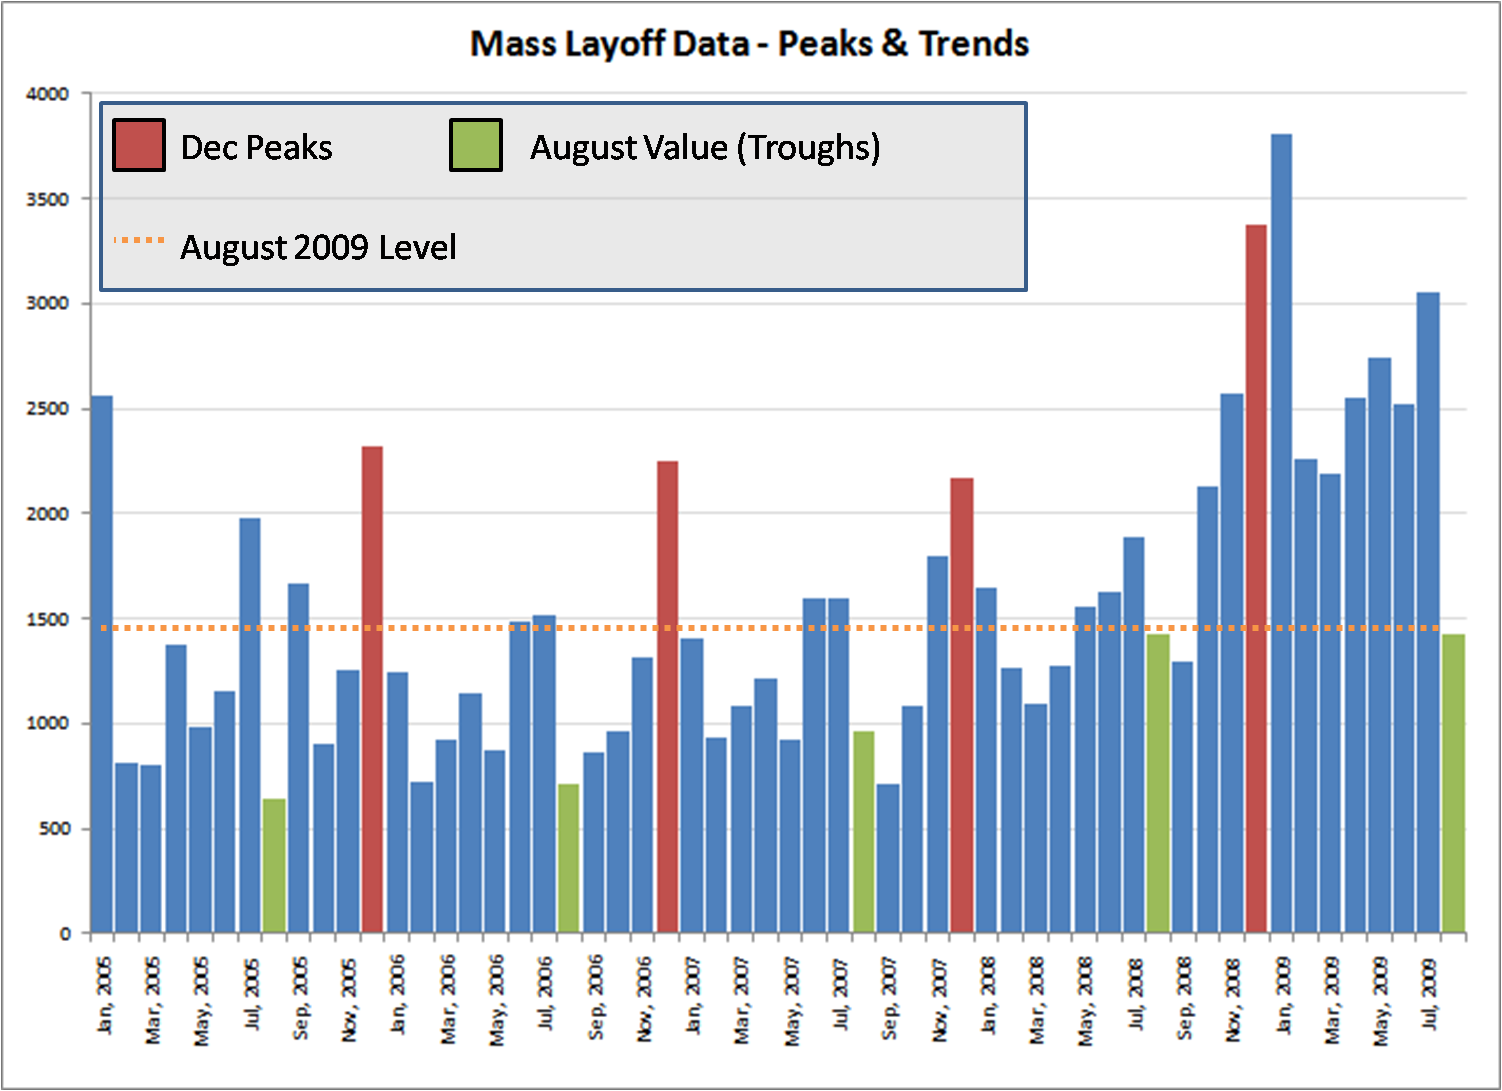 mass layoff event search results purestone partners llc aug 2009 mass layoff peaks